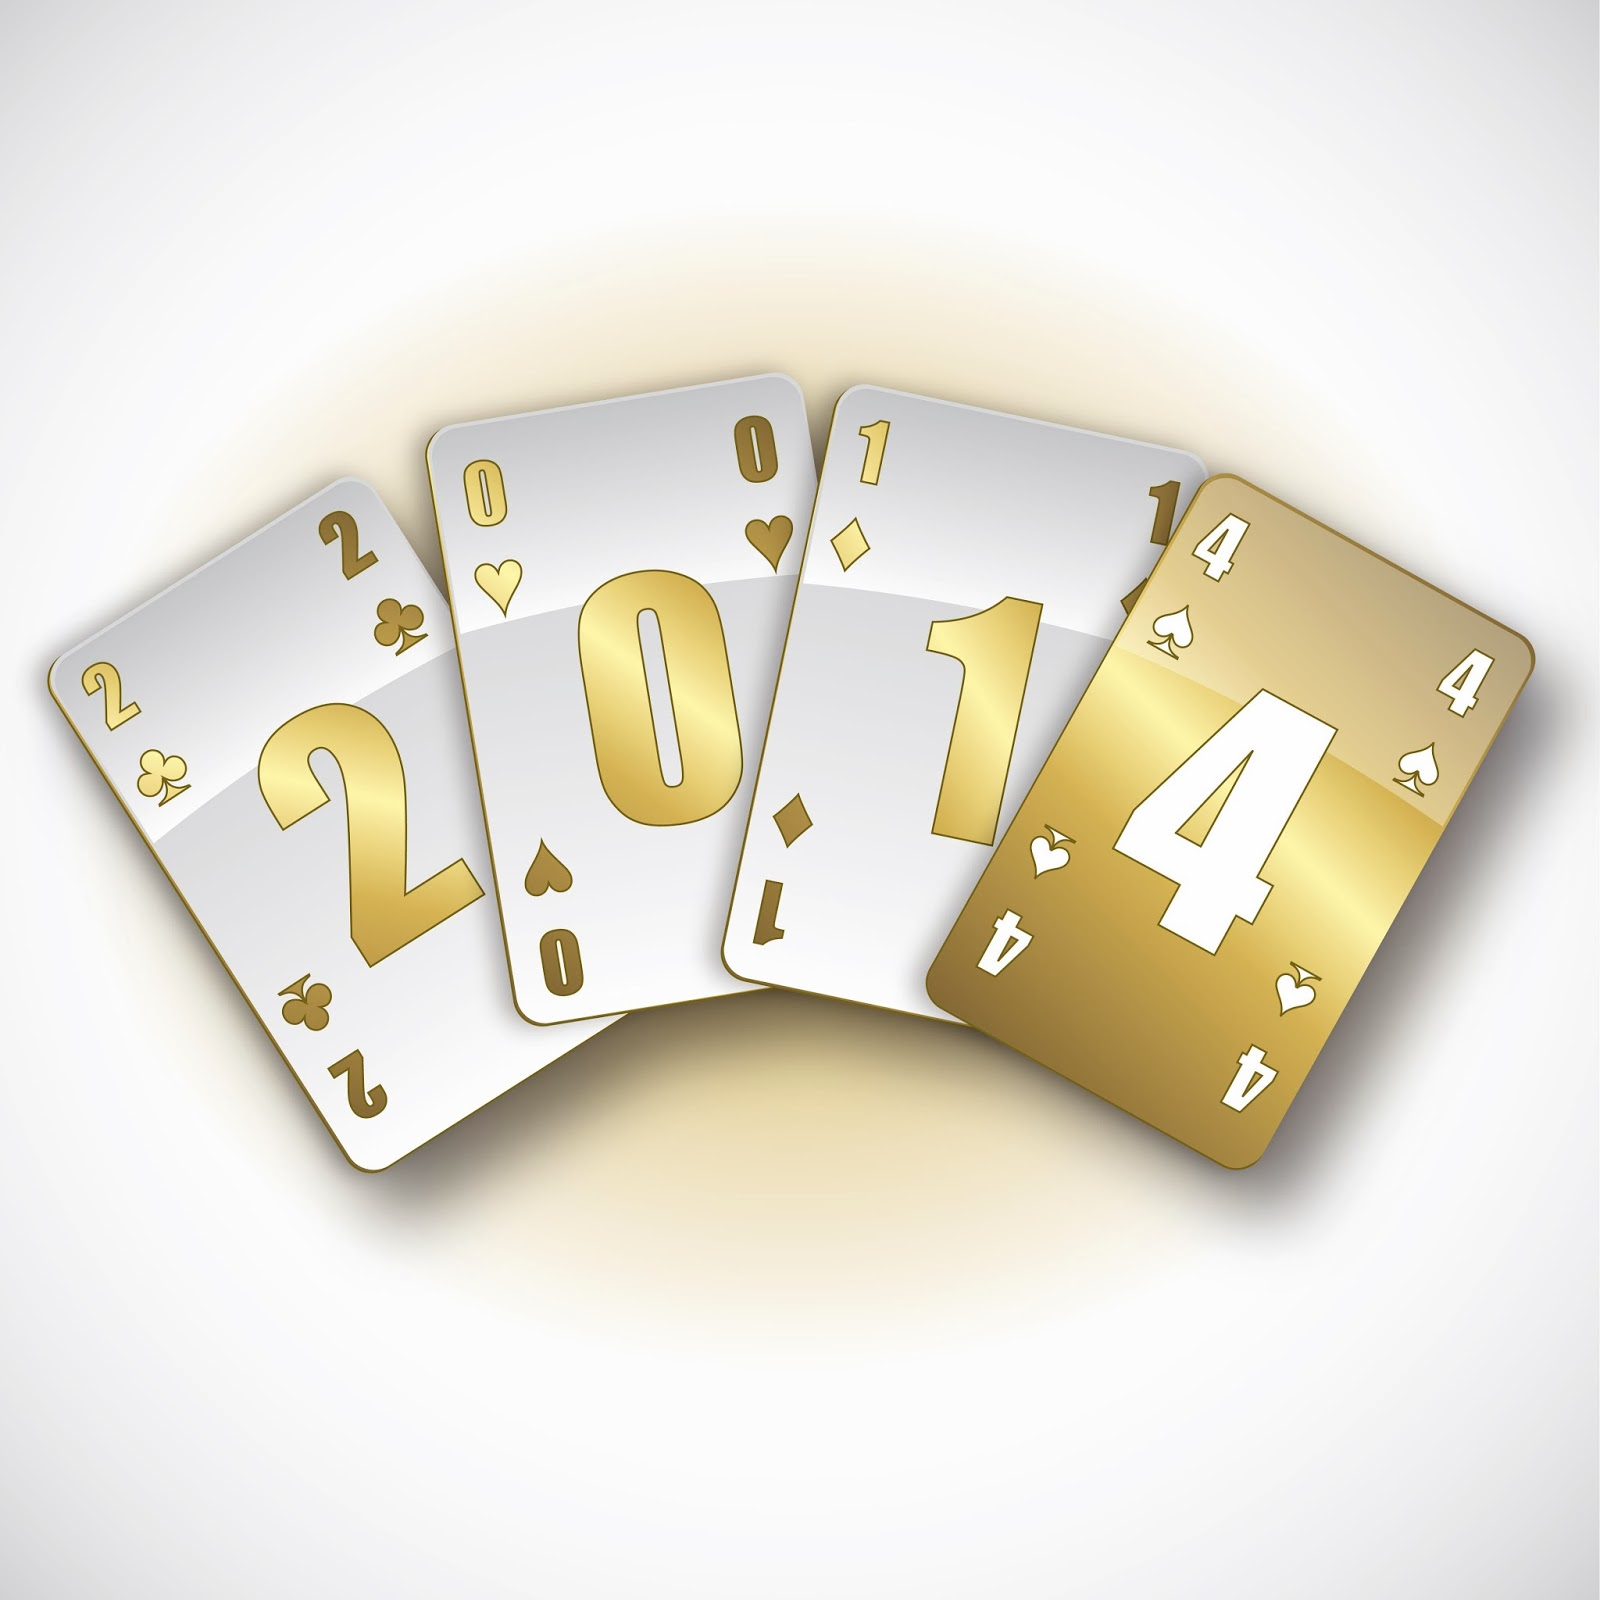 Happy New Year 2014 Clip Art.9 Happy New Years Clip Art 2014